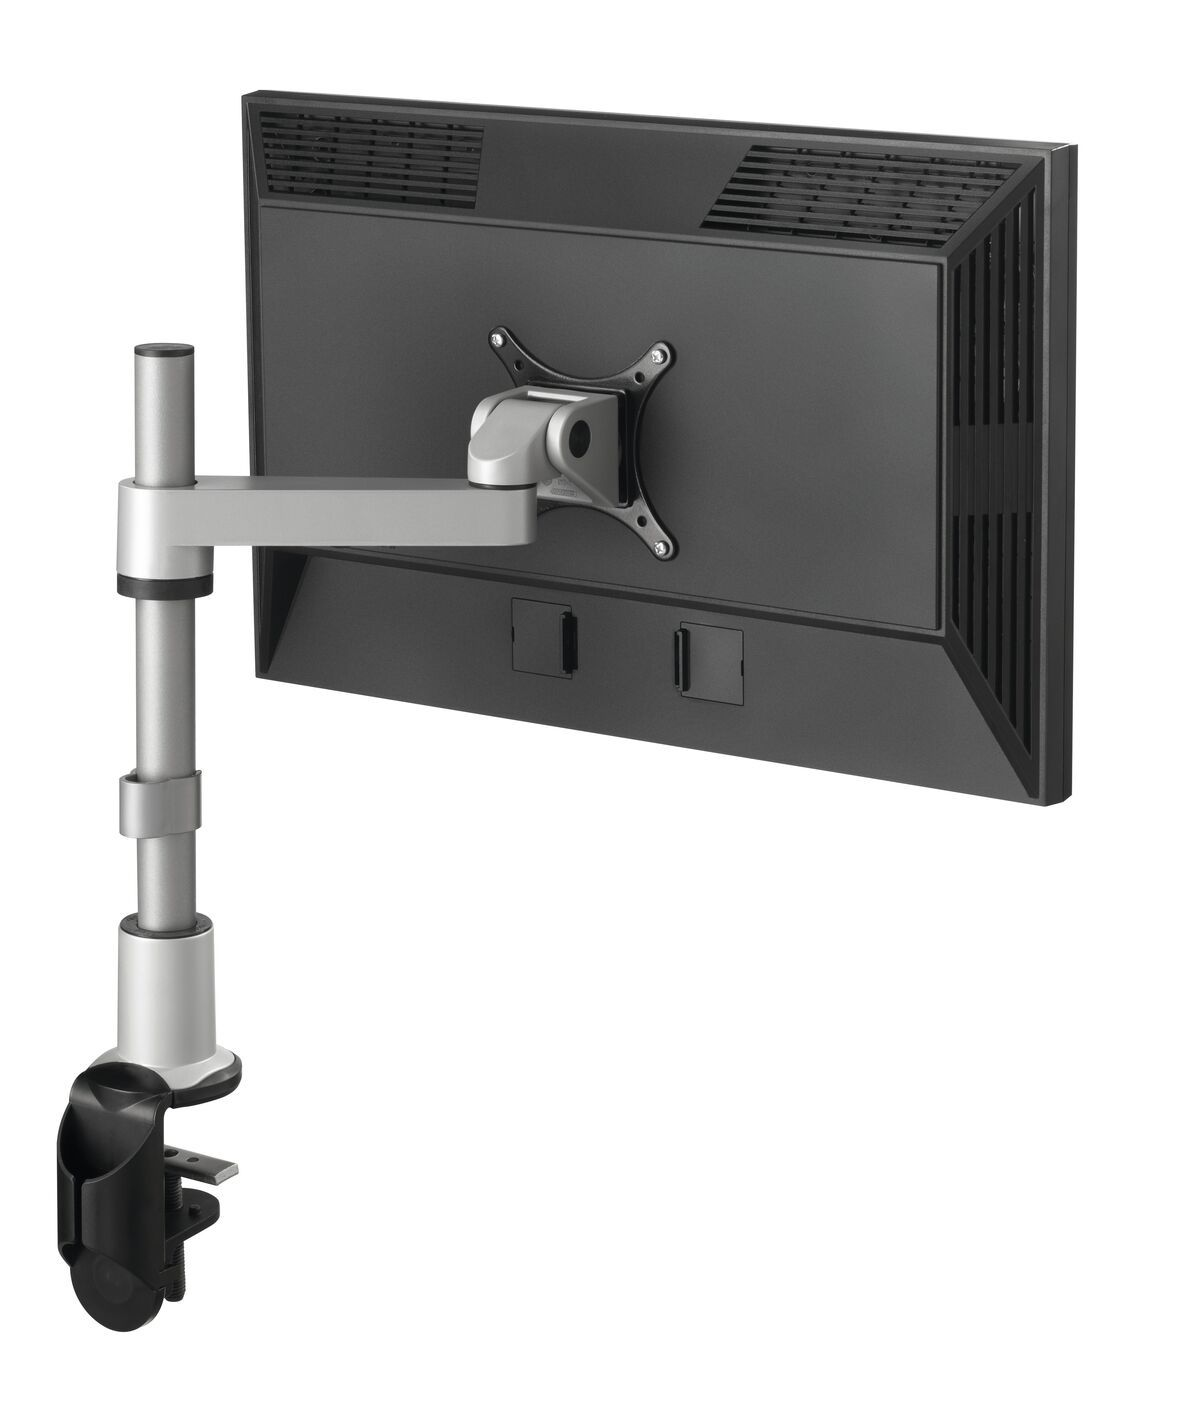 Vogel's PFD 8522 Monitor arm - Voor monitoren tot 13 kg - Ideaal voor Gaming en (Home) Office - Application